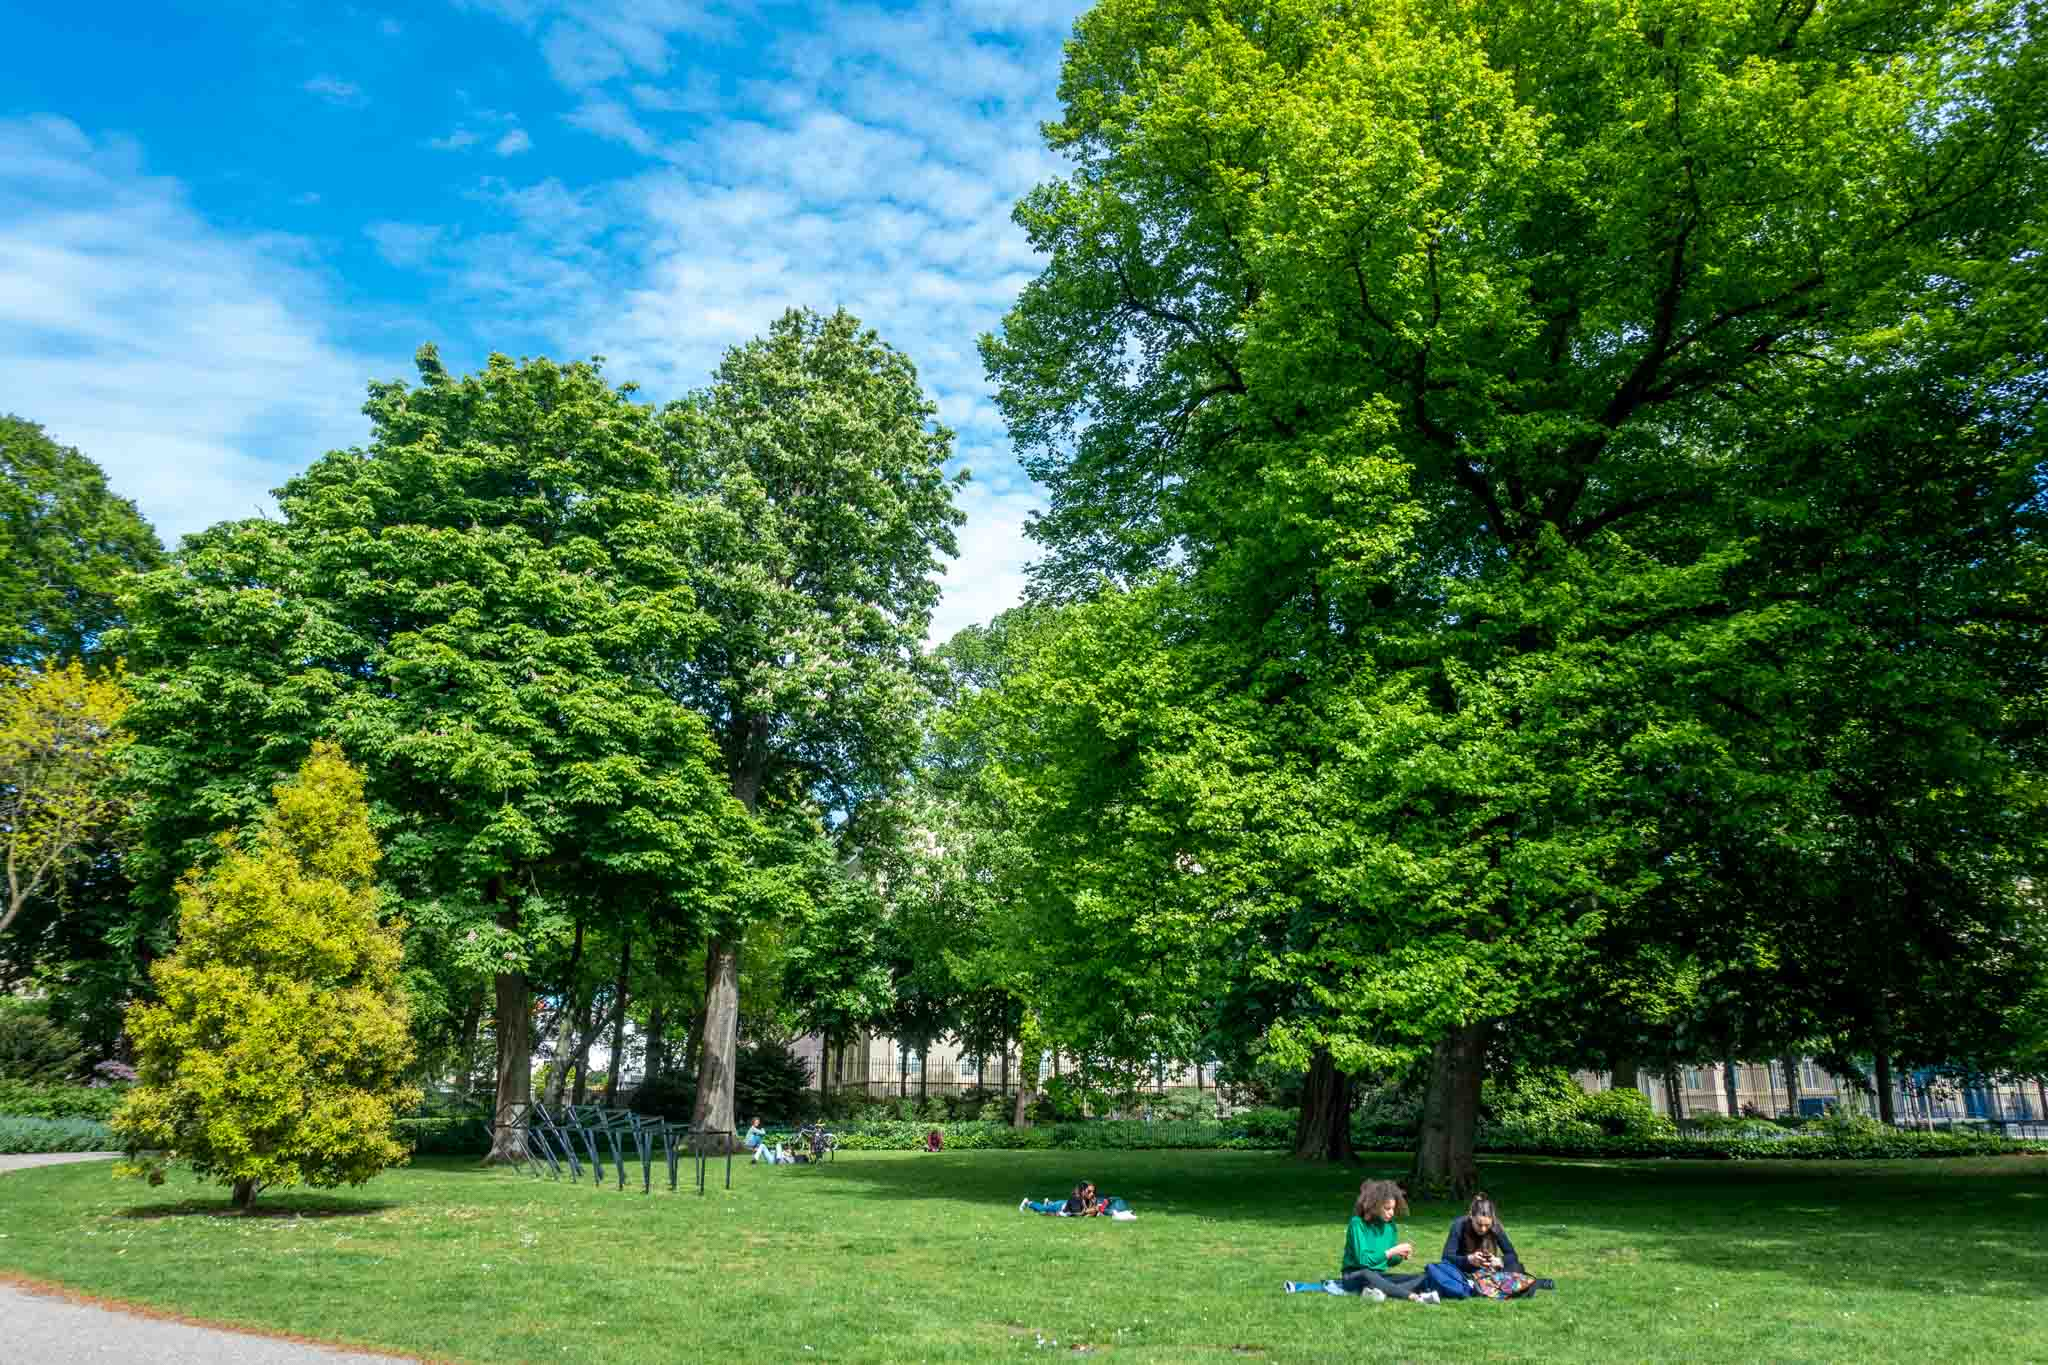 People lounging in the grass under trees